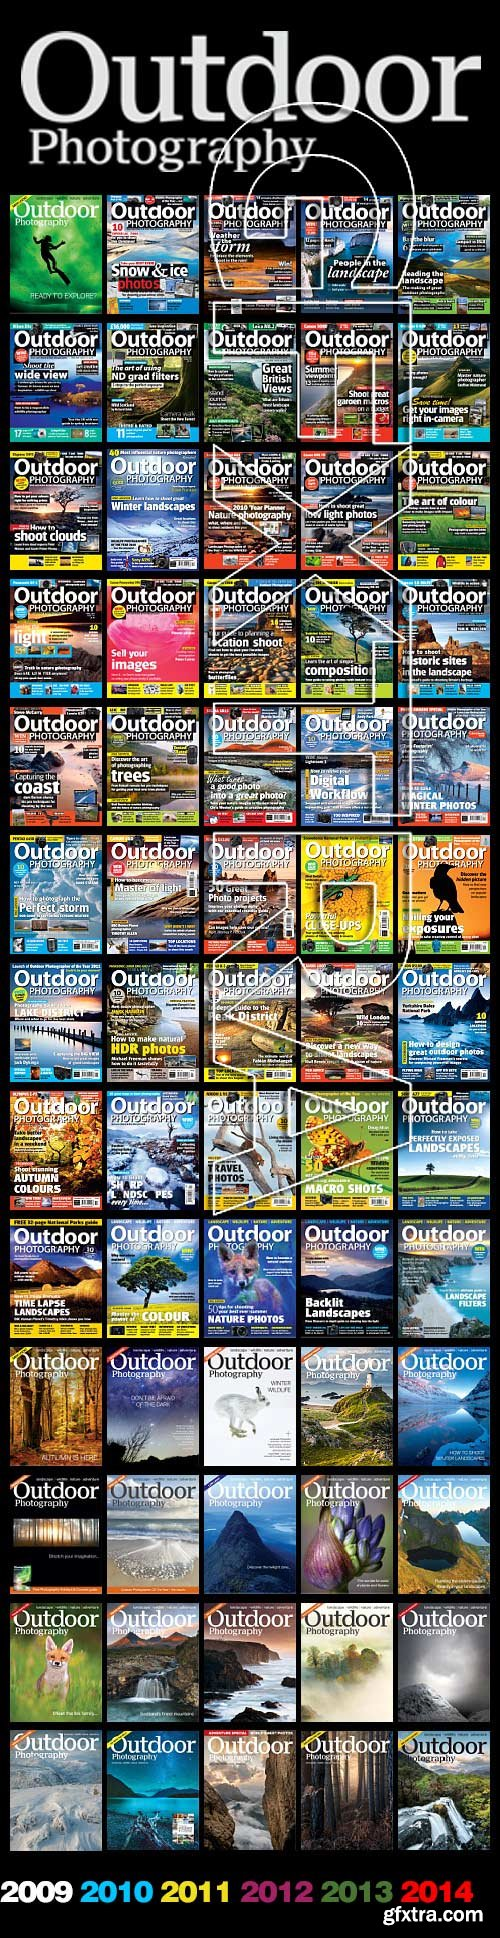 Outdoor Photography 2009-2014 All Volumes!